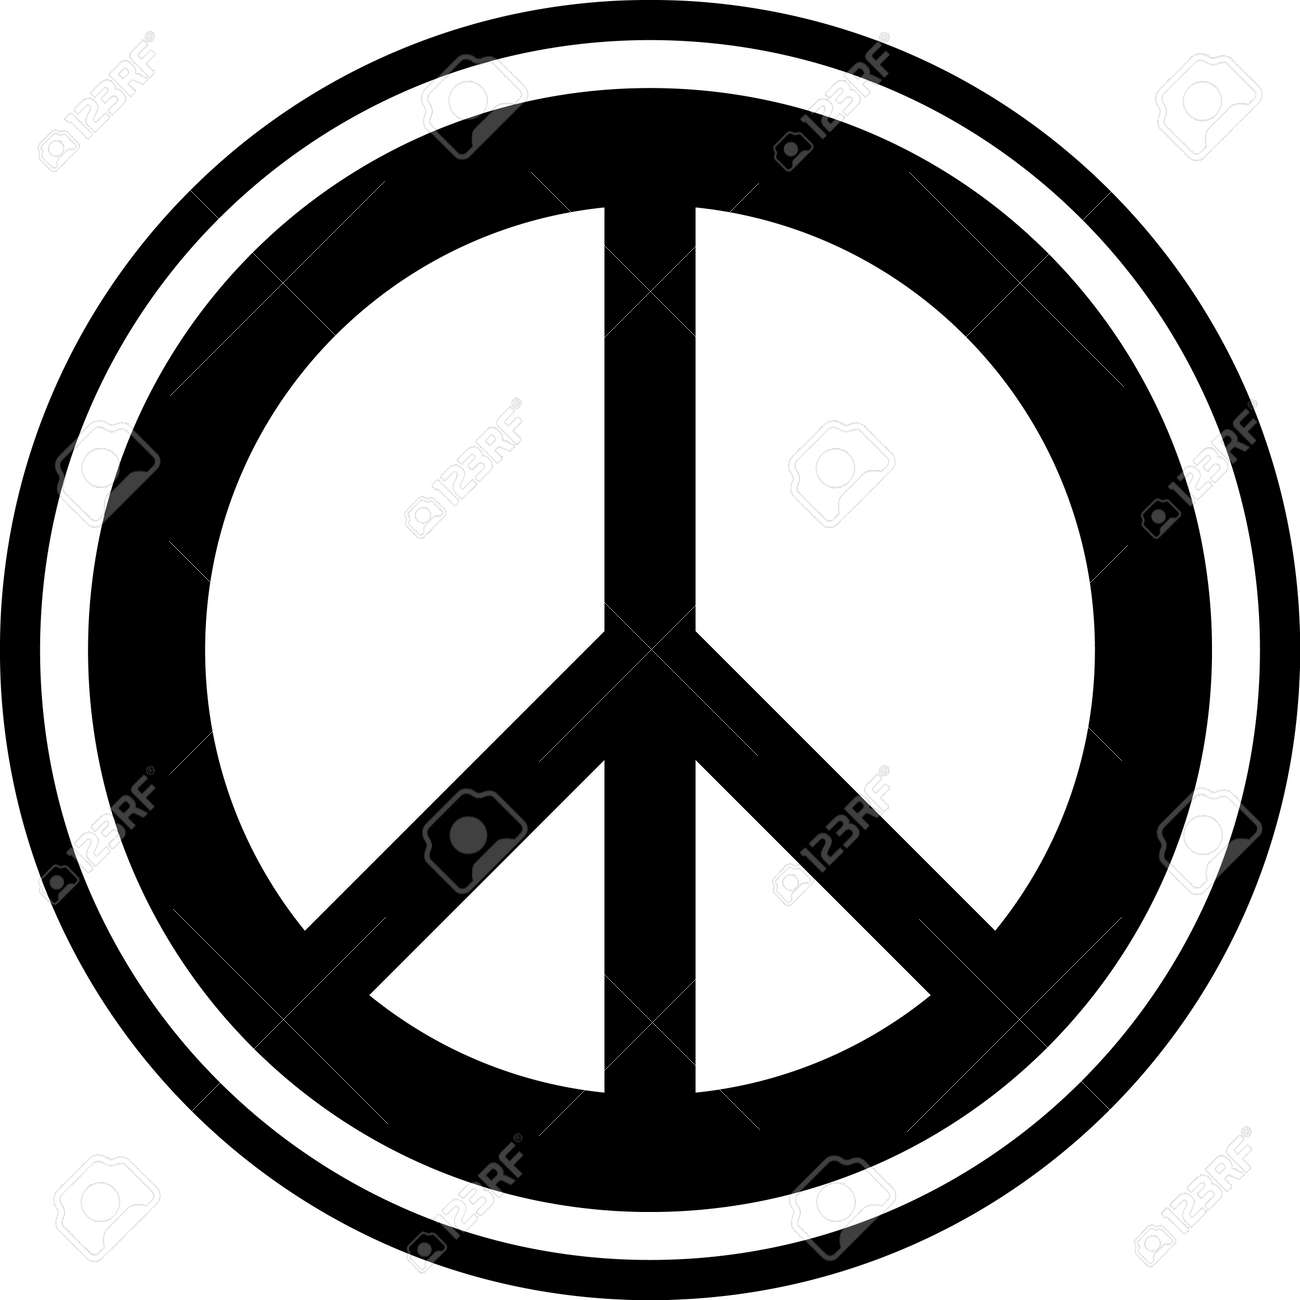 peace sign vector isolated royalty free cliparts vectors and stock rh 123rf com vector 70s peace sign vector peace sign fingers